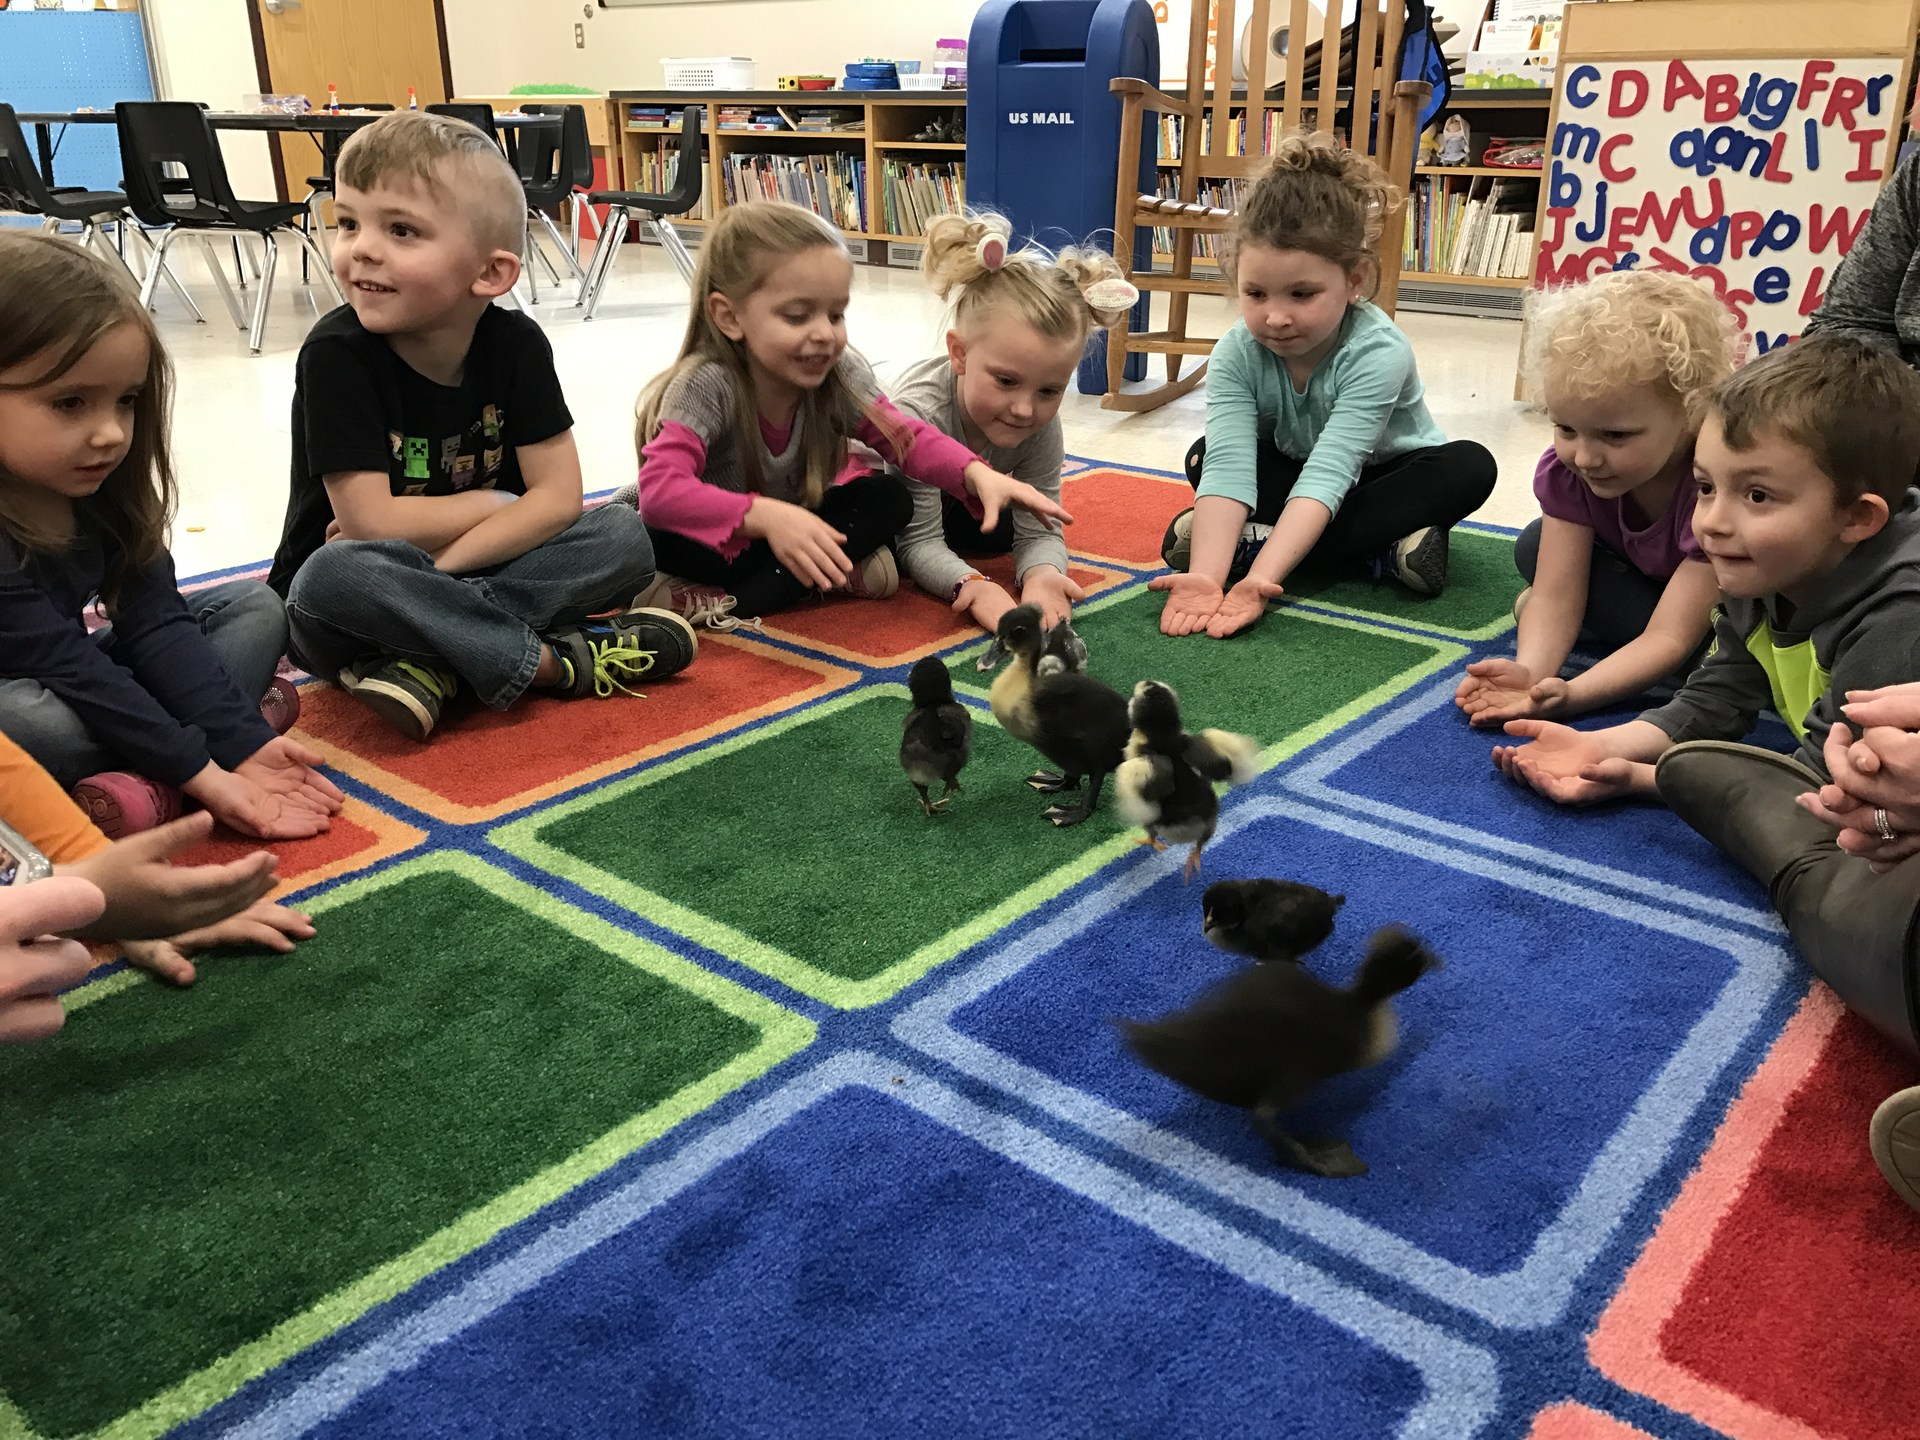 More students with ducks and chicks!